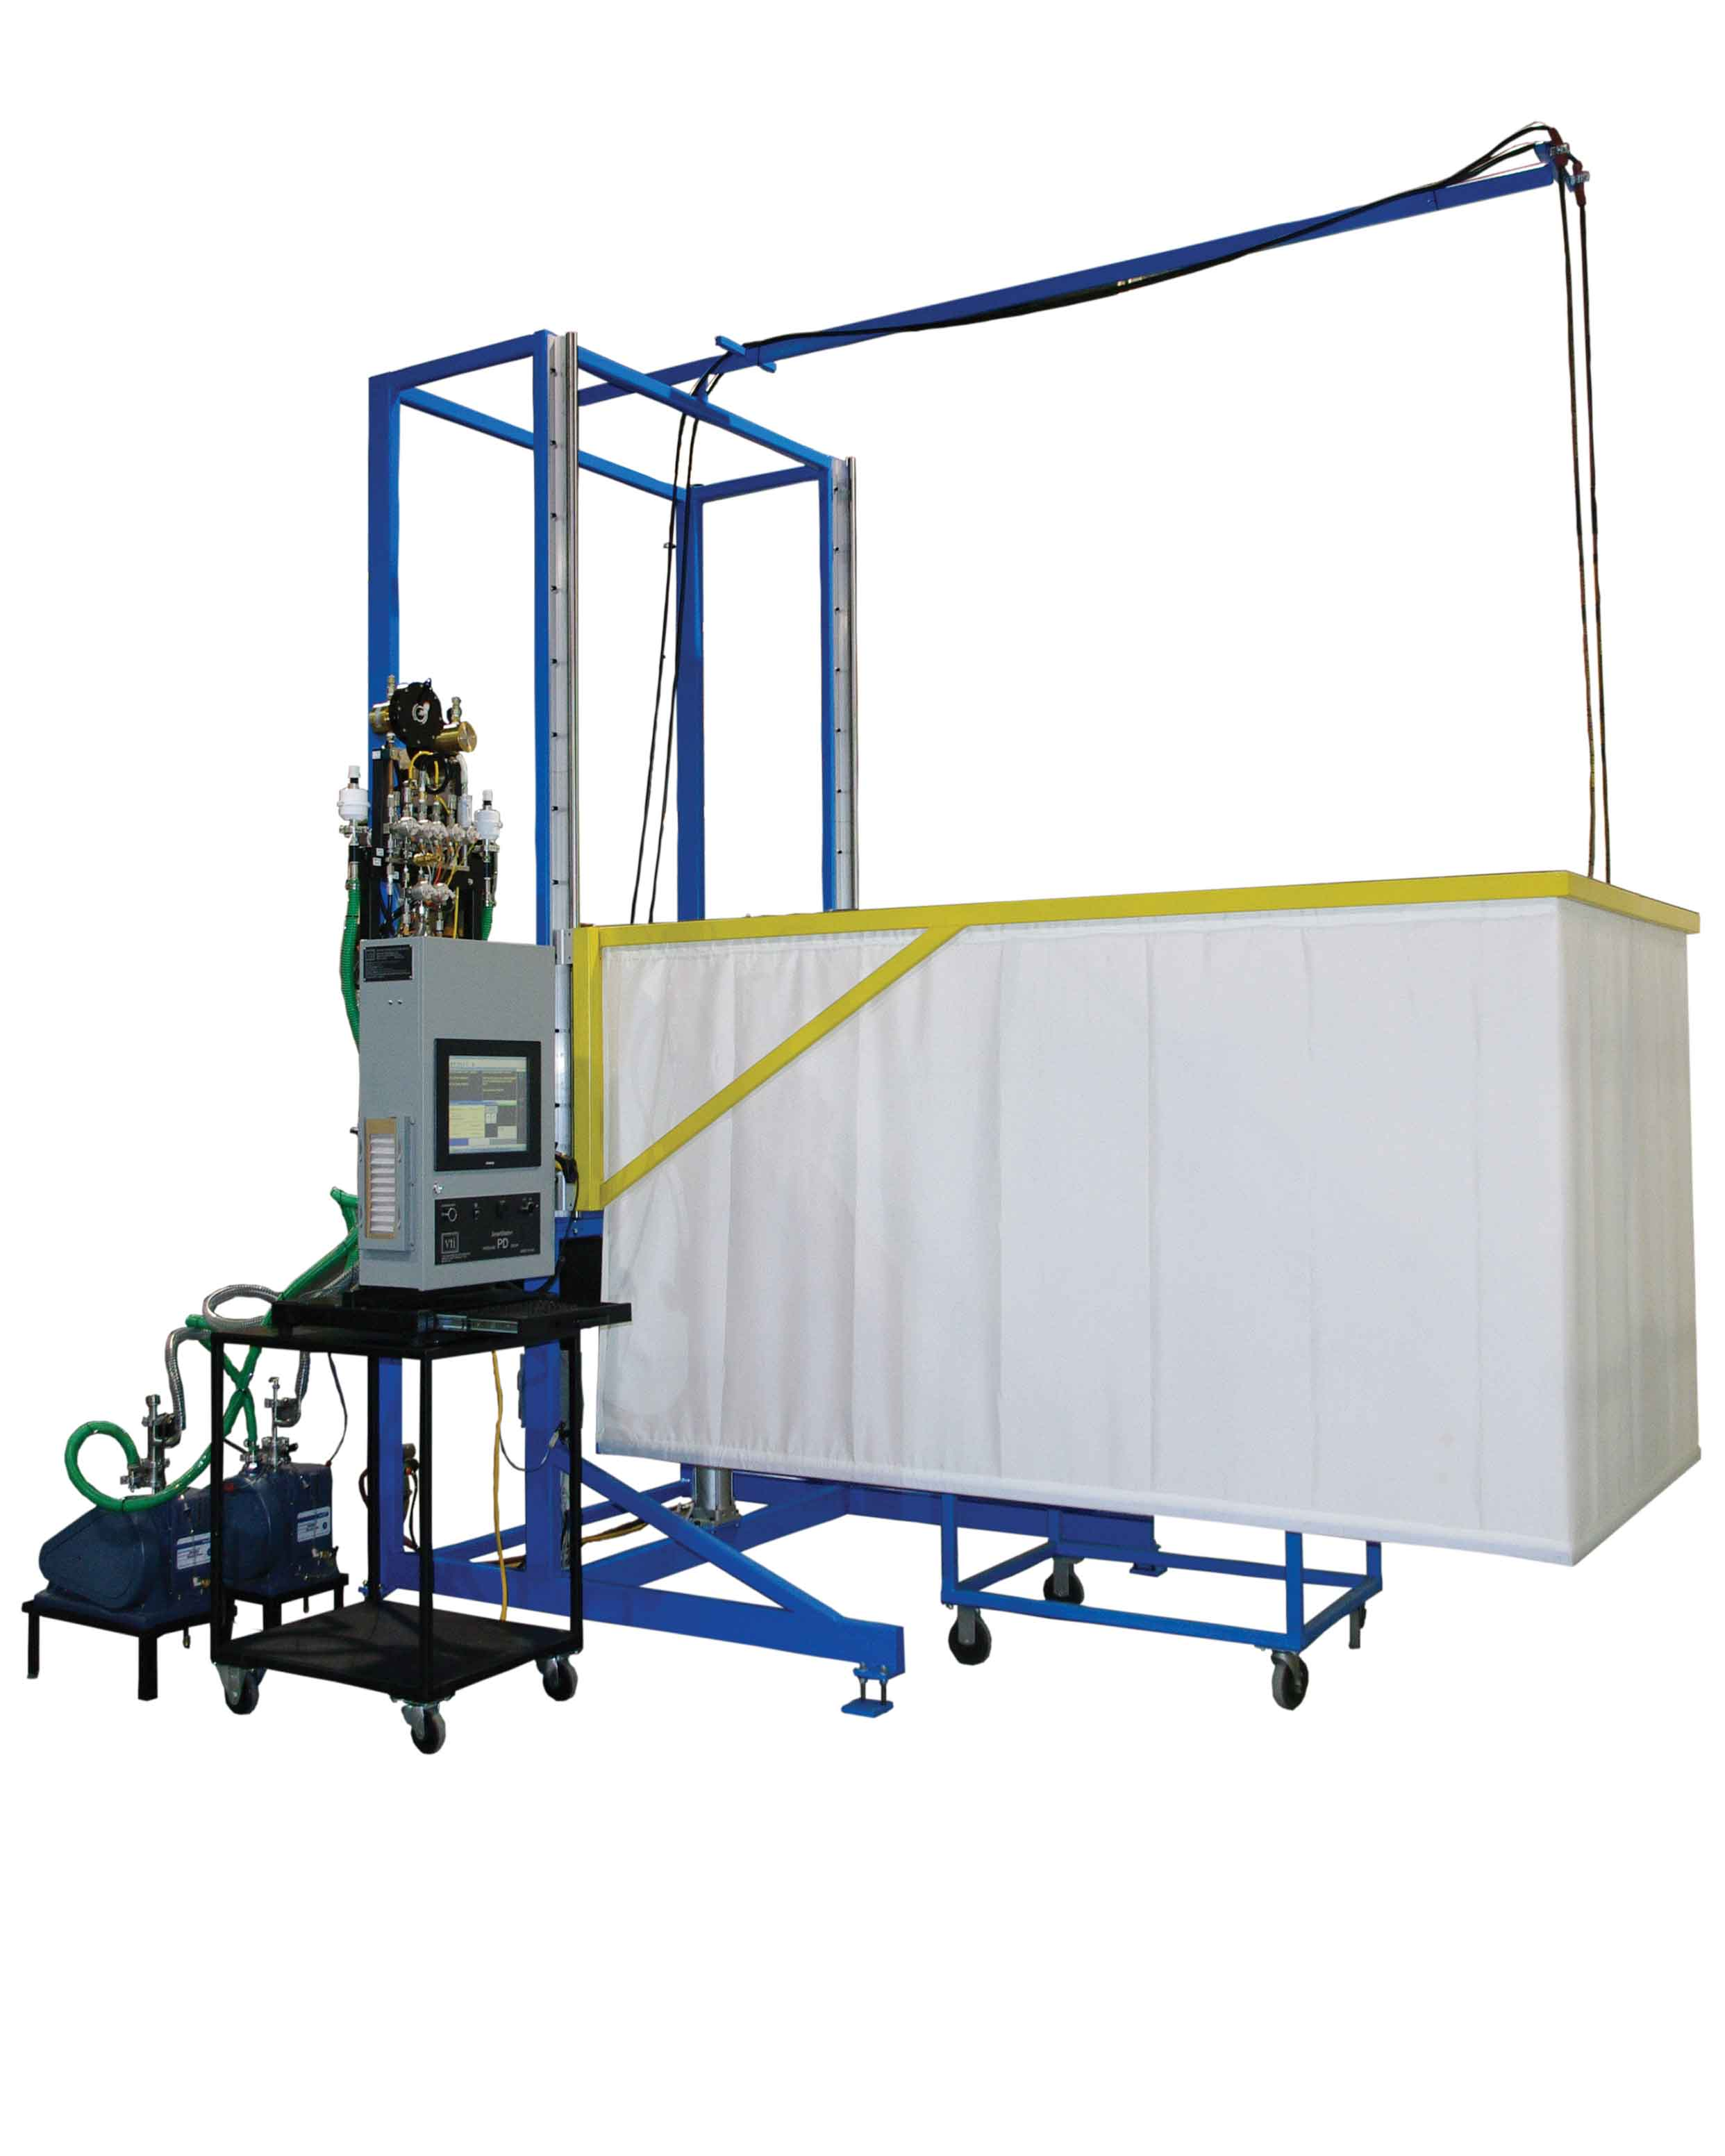 VTI's Pressure Decay & Tracer Gas Charge with Ballistic Safety Curtain for Slab Coil Manufacturing